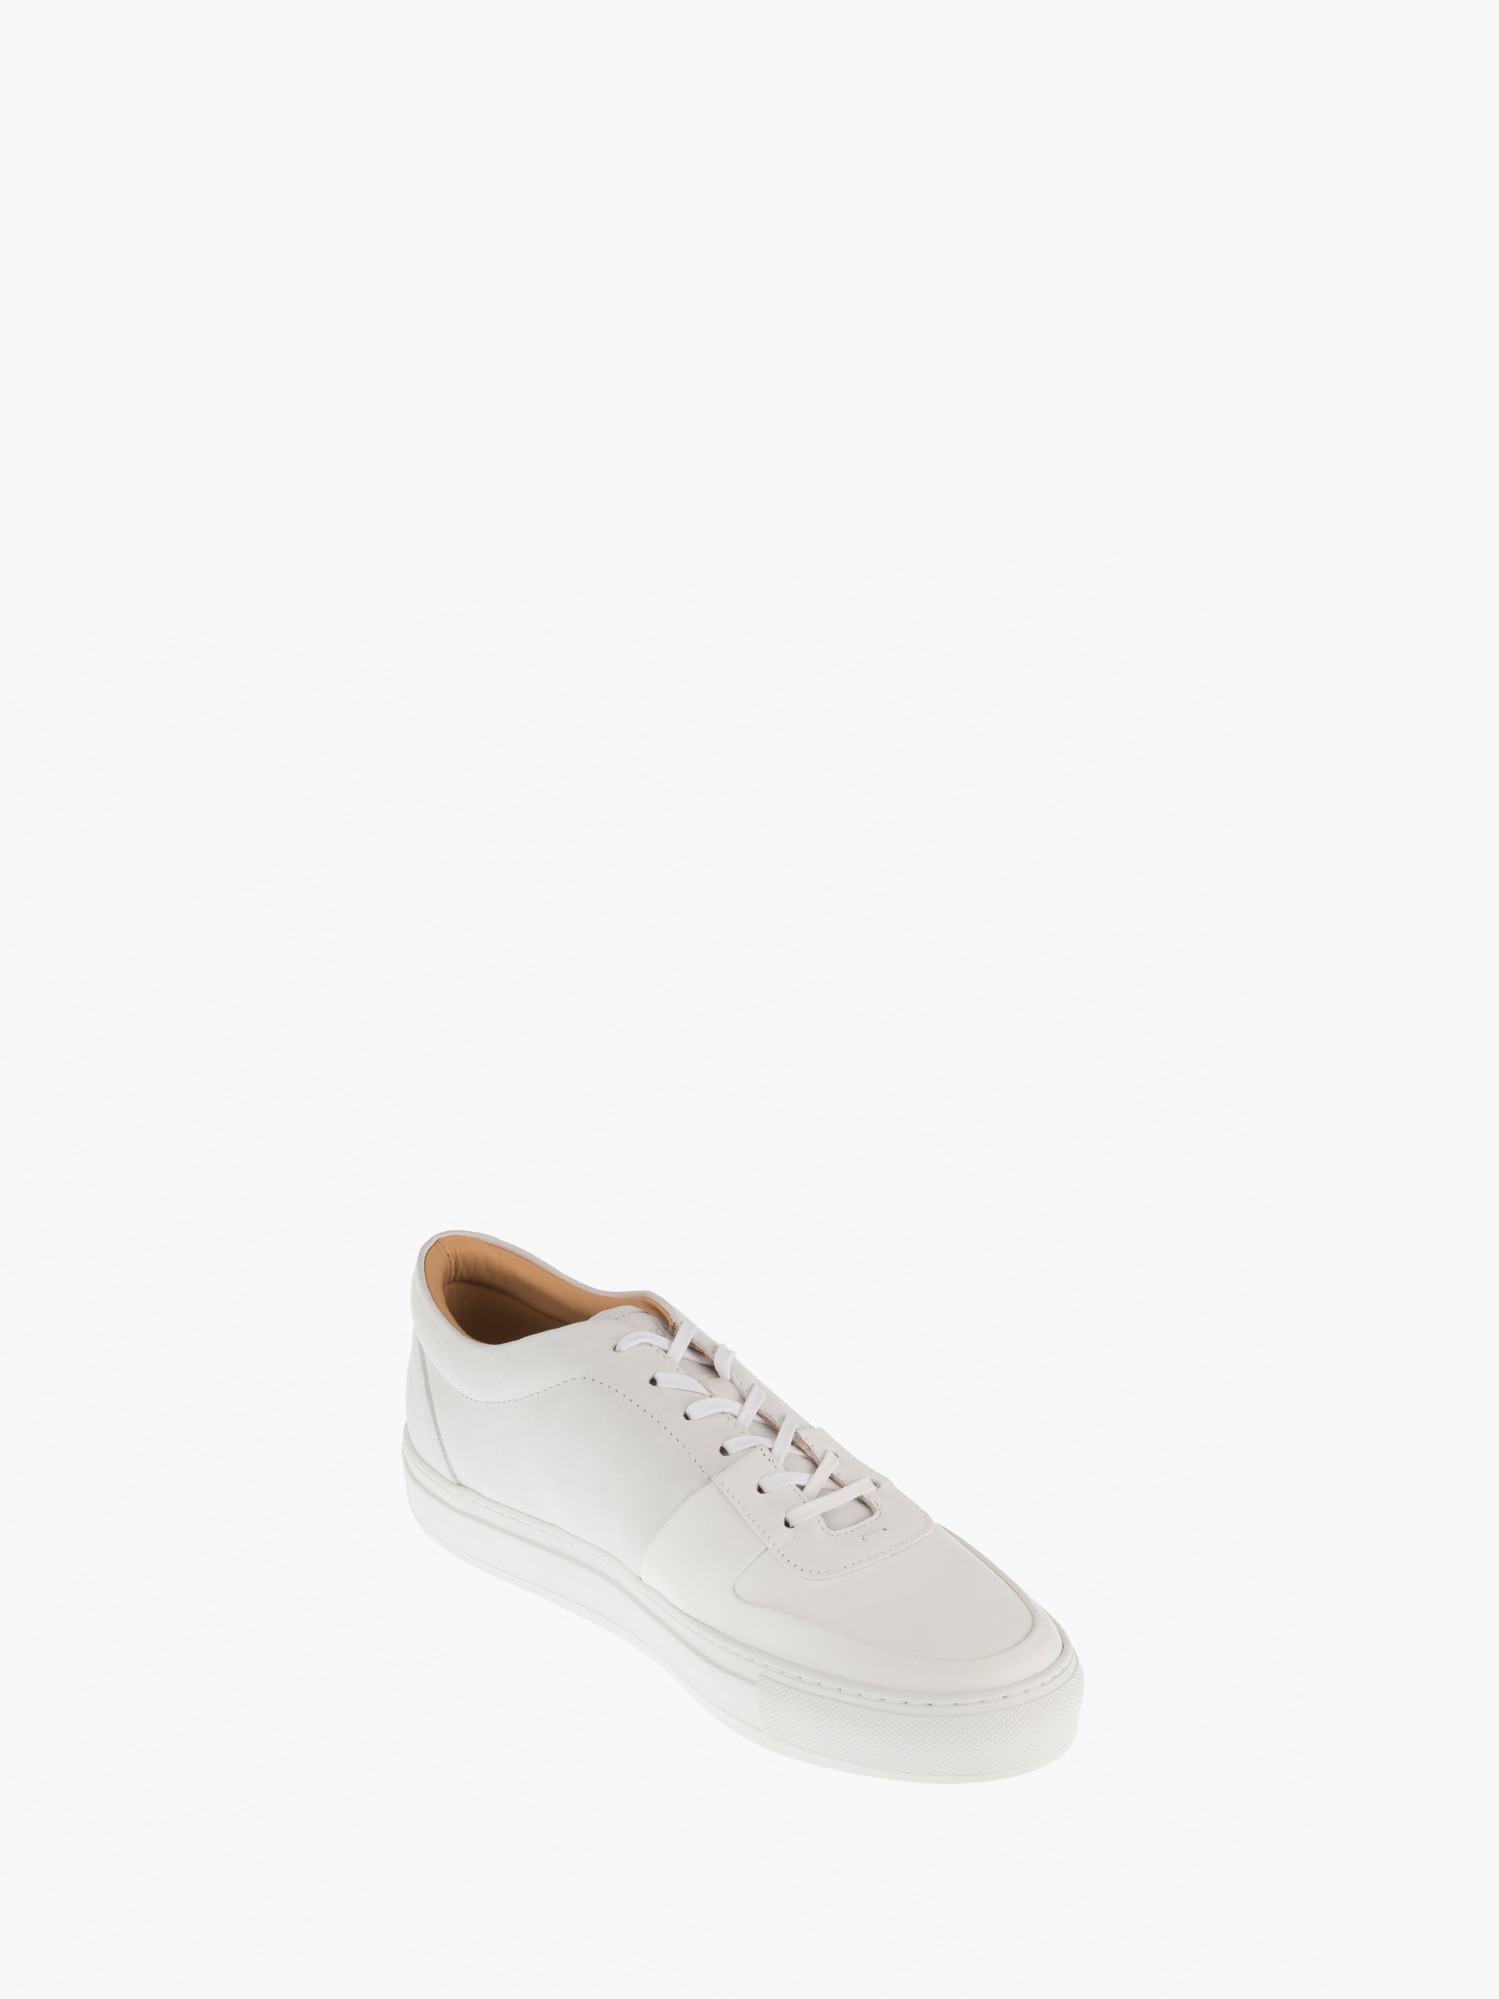 balmoral 06 nubuck/leather white